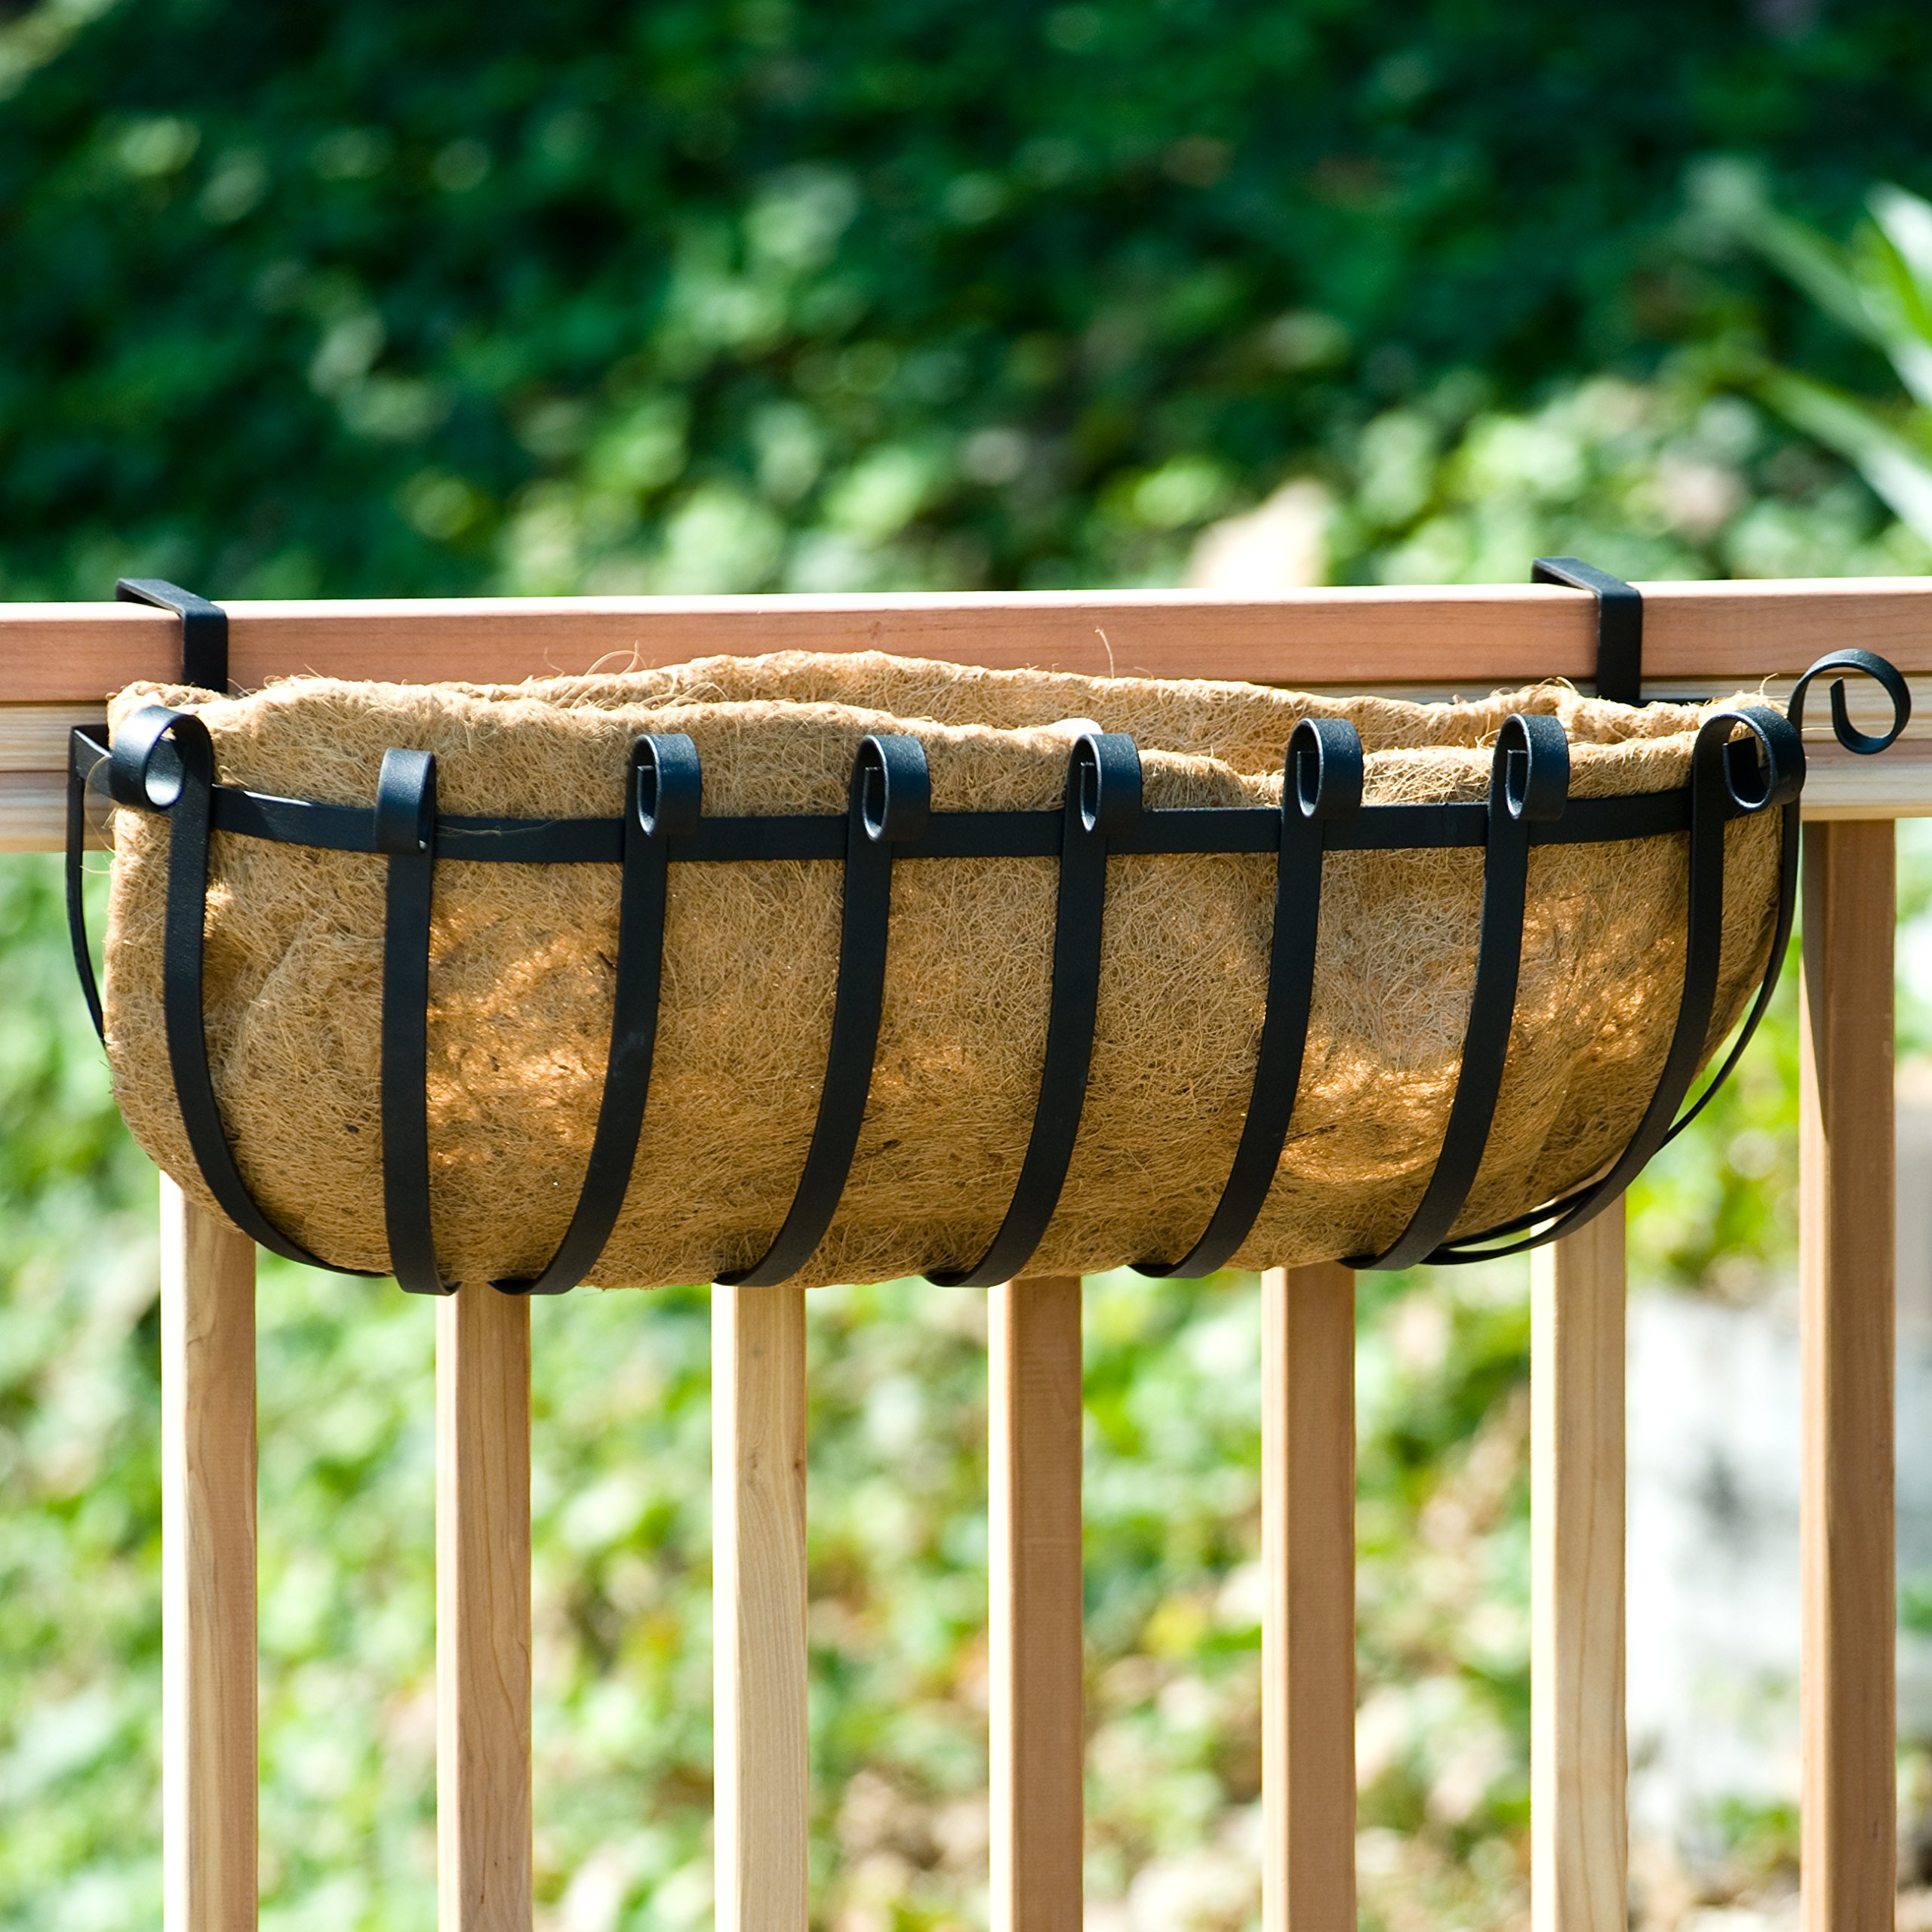 24 inch XL Scroll Railing Planter w/ XL Coco Liner and bracket pair for 2x6 wood railing